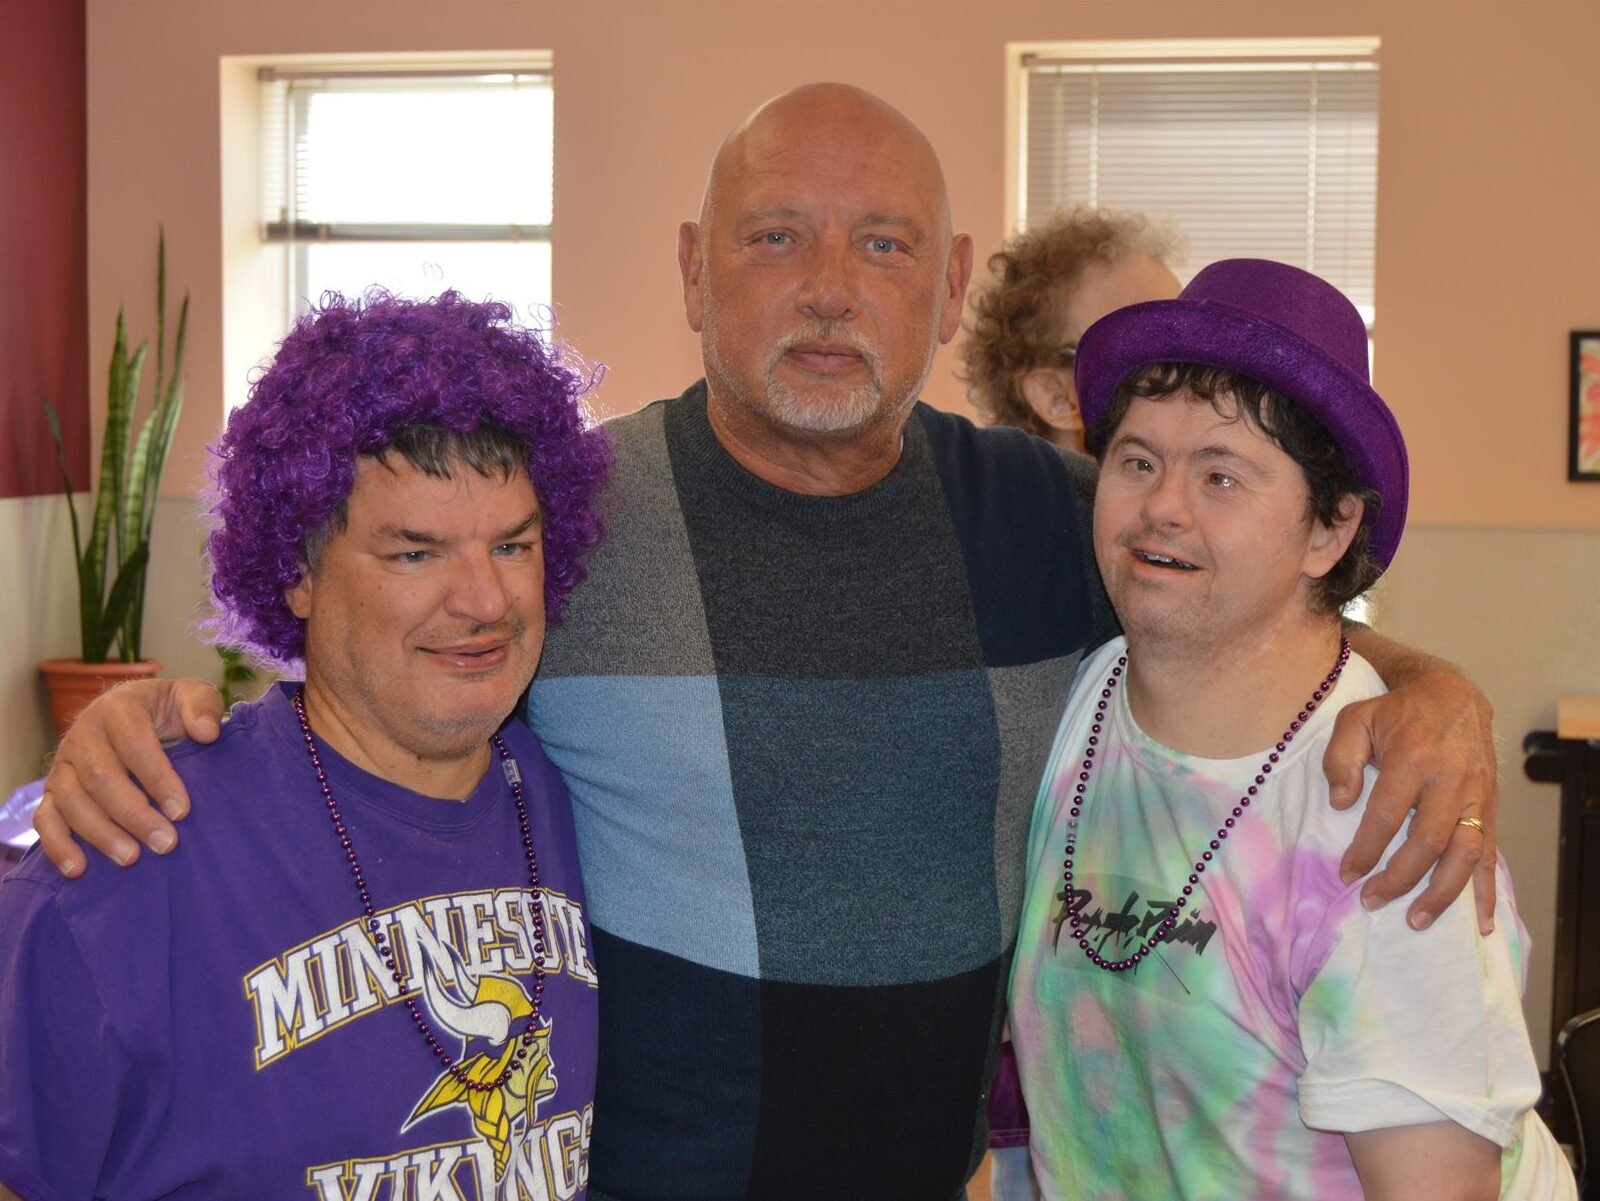 Executive Director John Wayne Barker and clients wearing purple